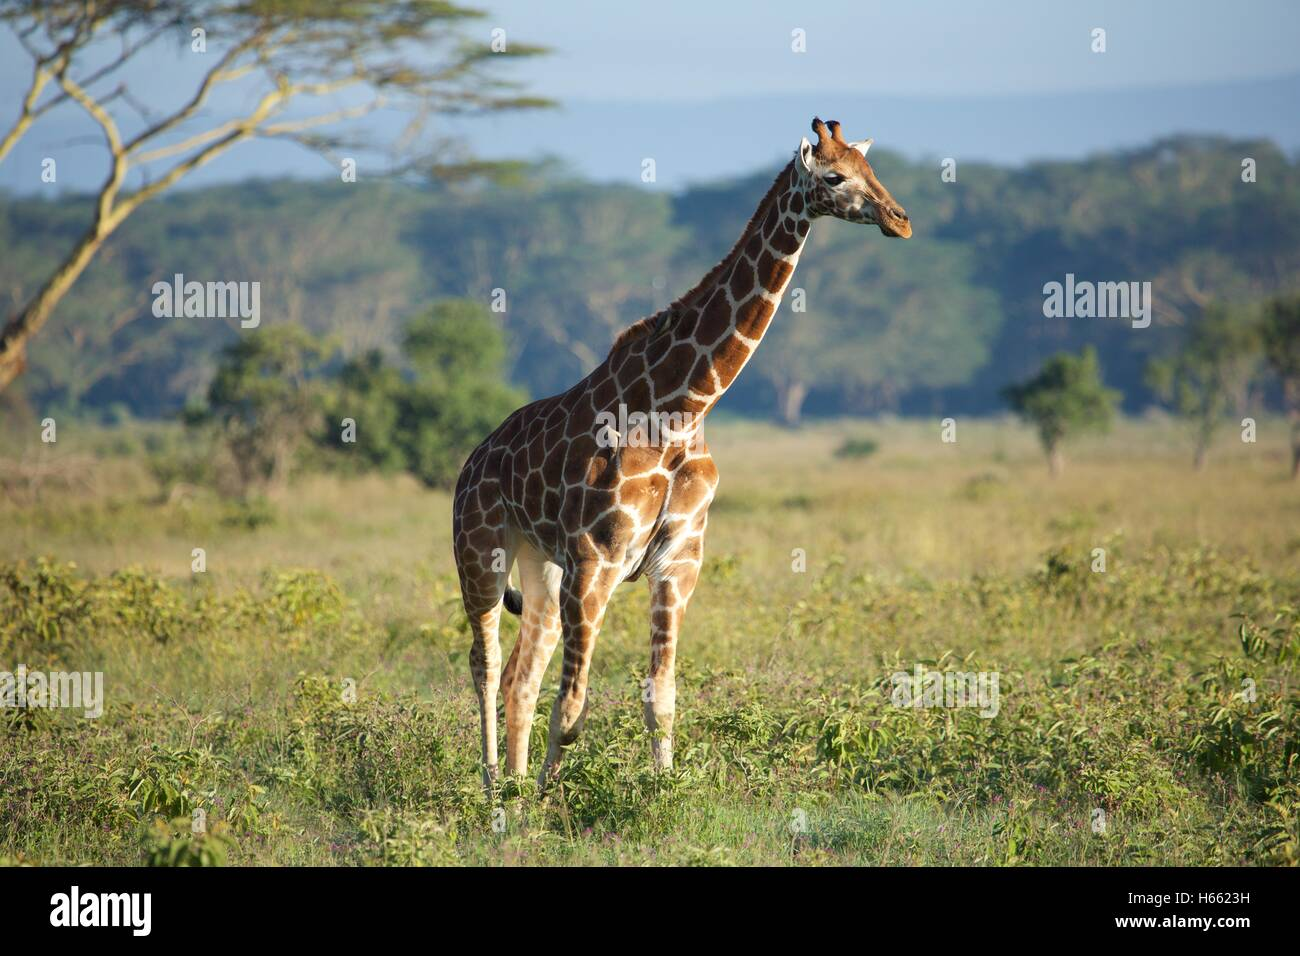 Viewing wild Rothschild giraffe on safari in Lake Nakuru, Kenya - Stock Image